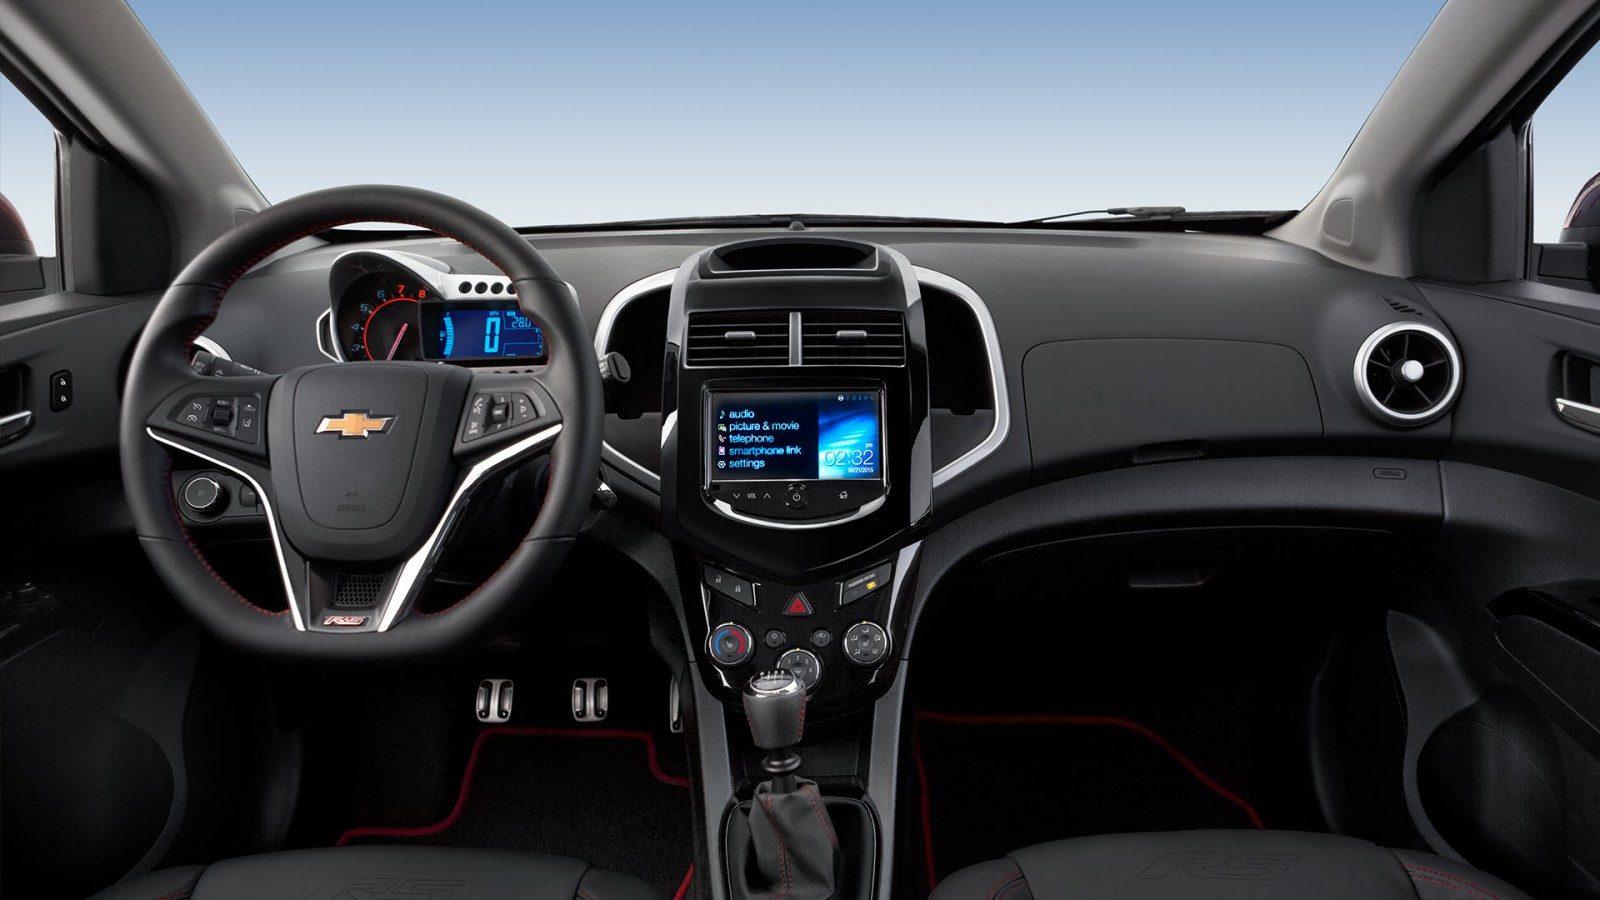 Technology. The 2018 Chevrolet Sonic ... Great Pictures